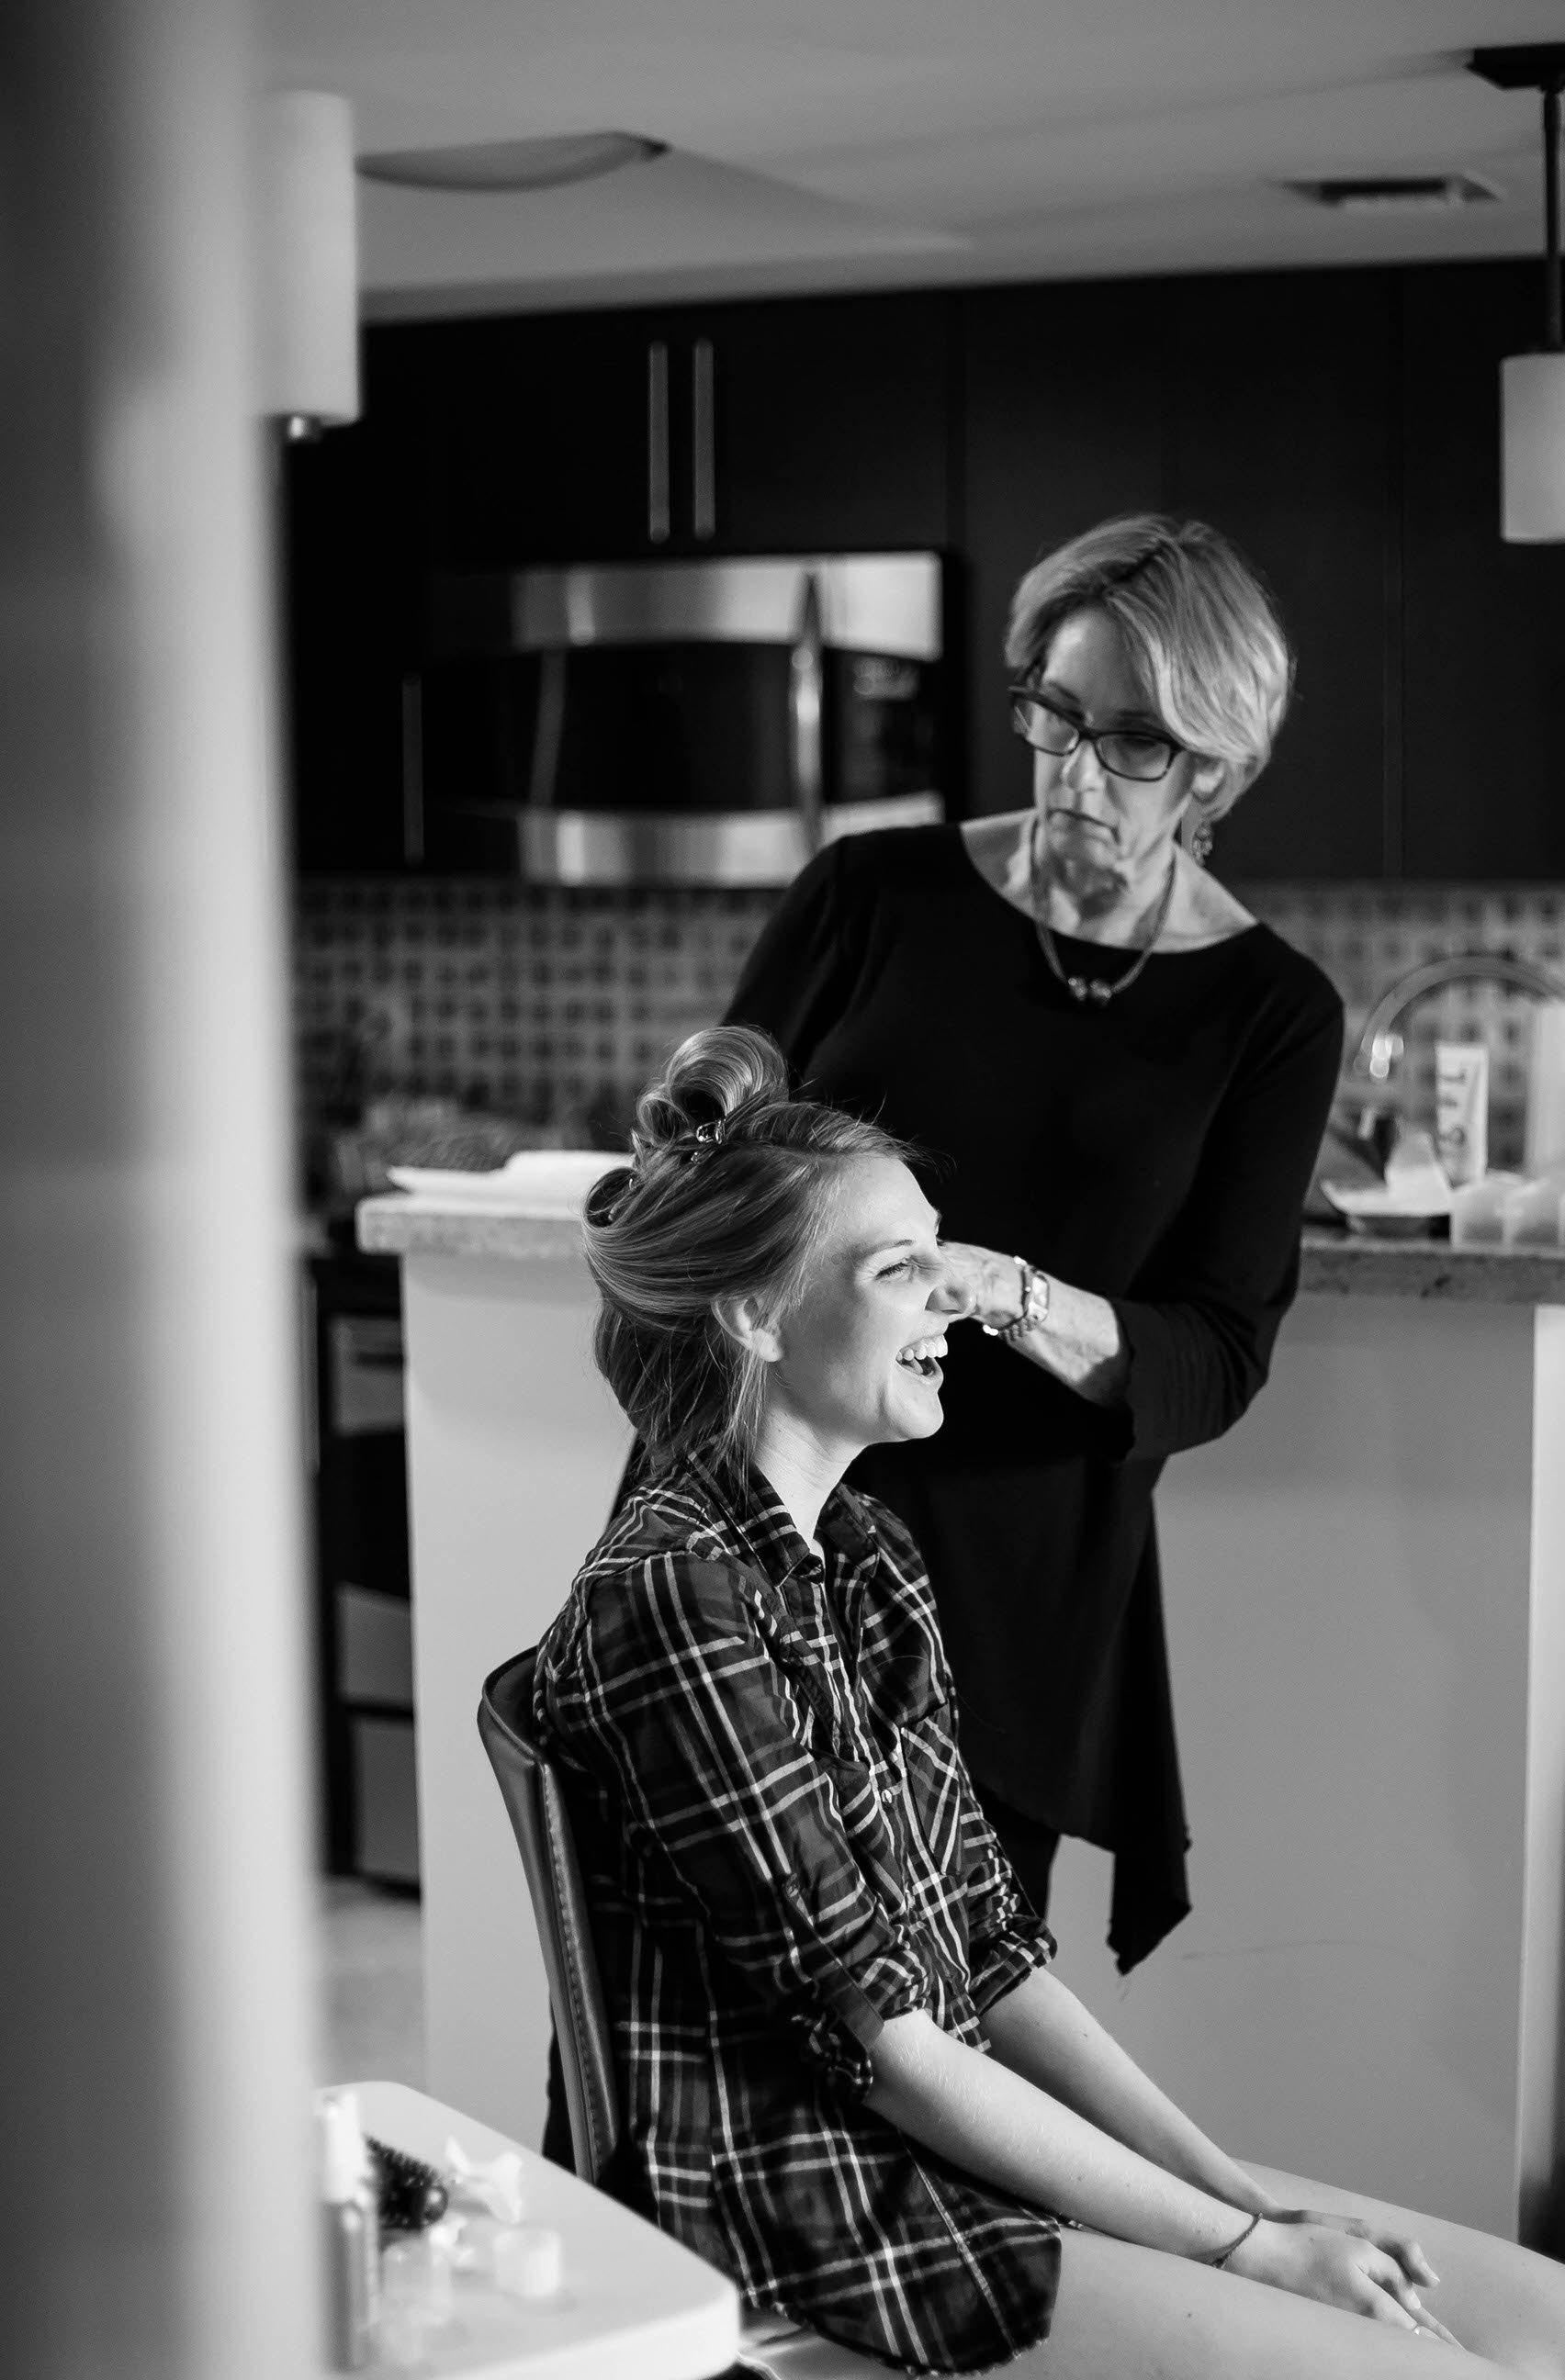 black_and_white_bride_getting_ready_makeup_tiny_house_photo.jpg